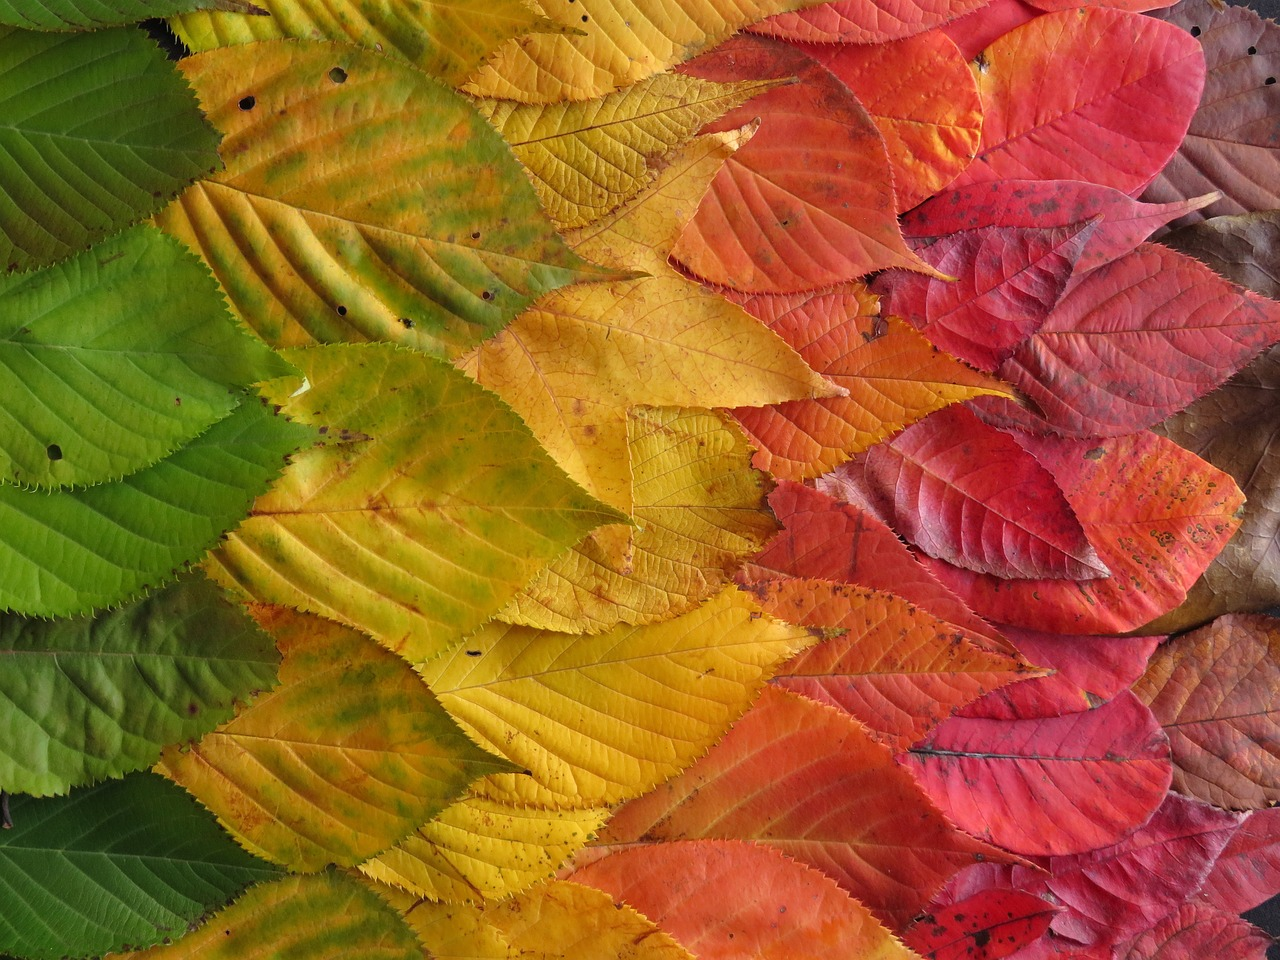 autumn-leaves-1460731_1280.jpg